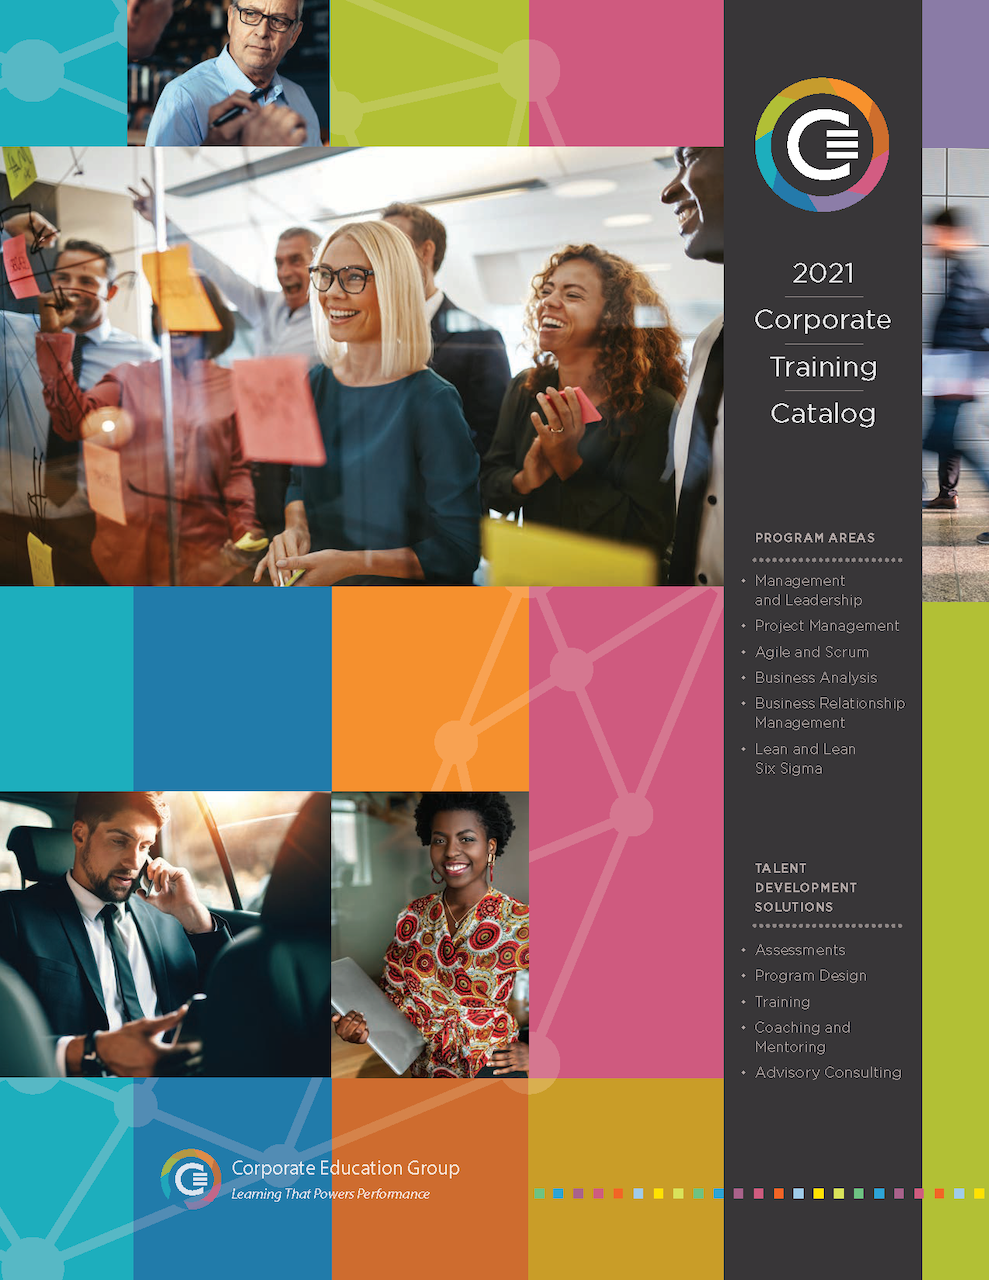 CEG Corporate Training Catalog